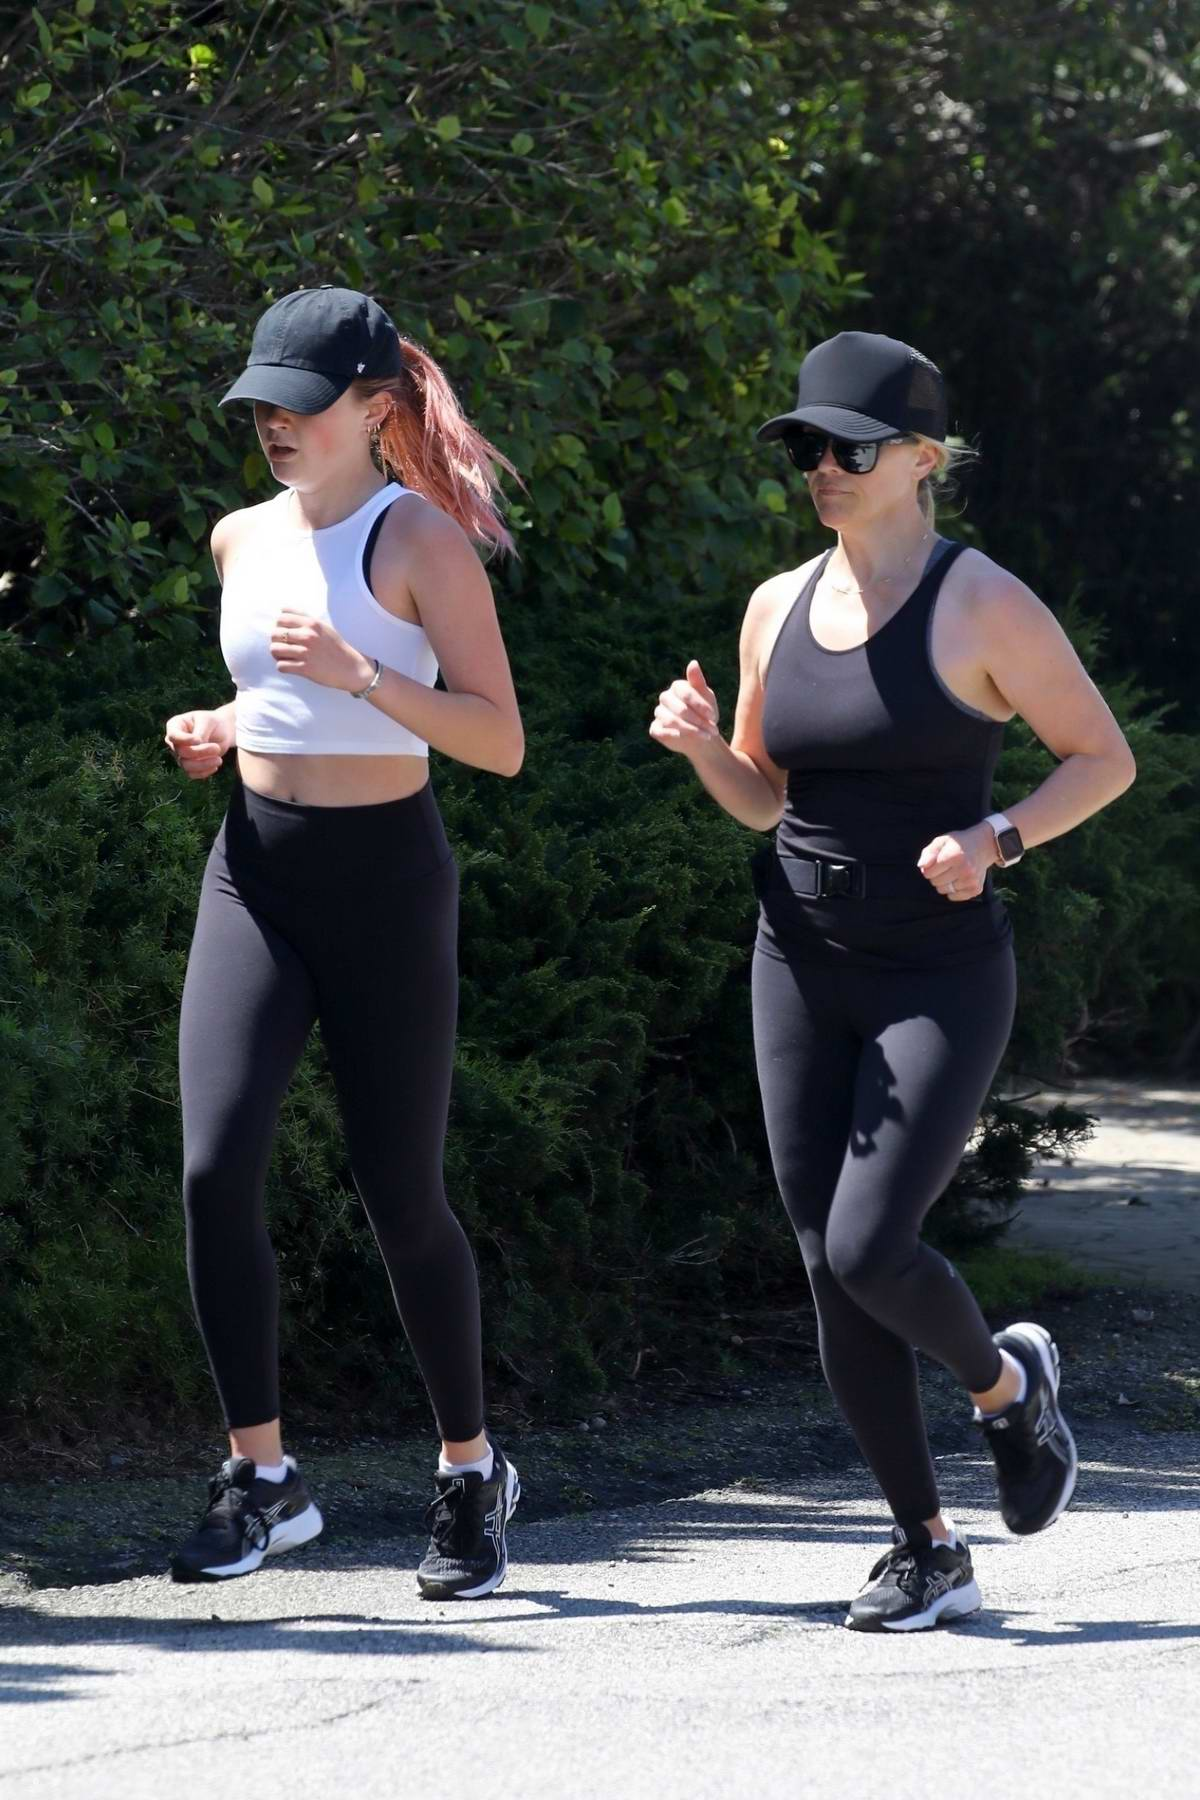 Reese Witherspoon and Ava Phillippe go out for jogging around their neighborhood in Pacific Palisades, California